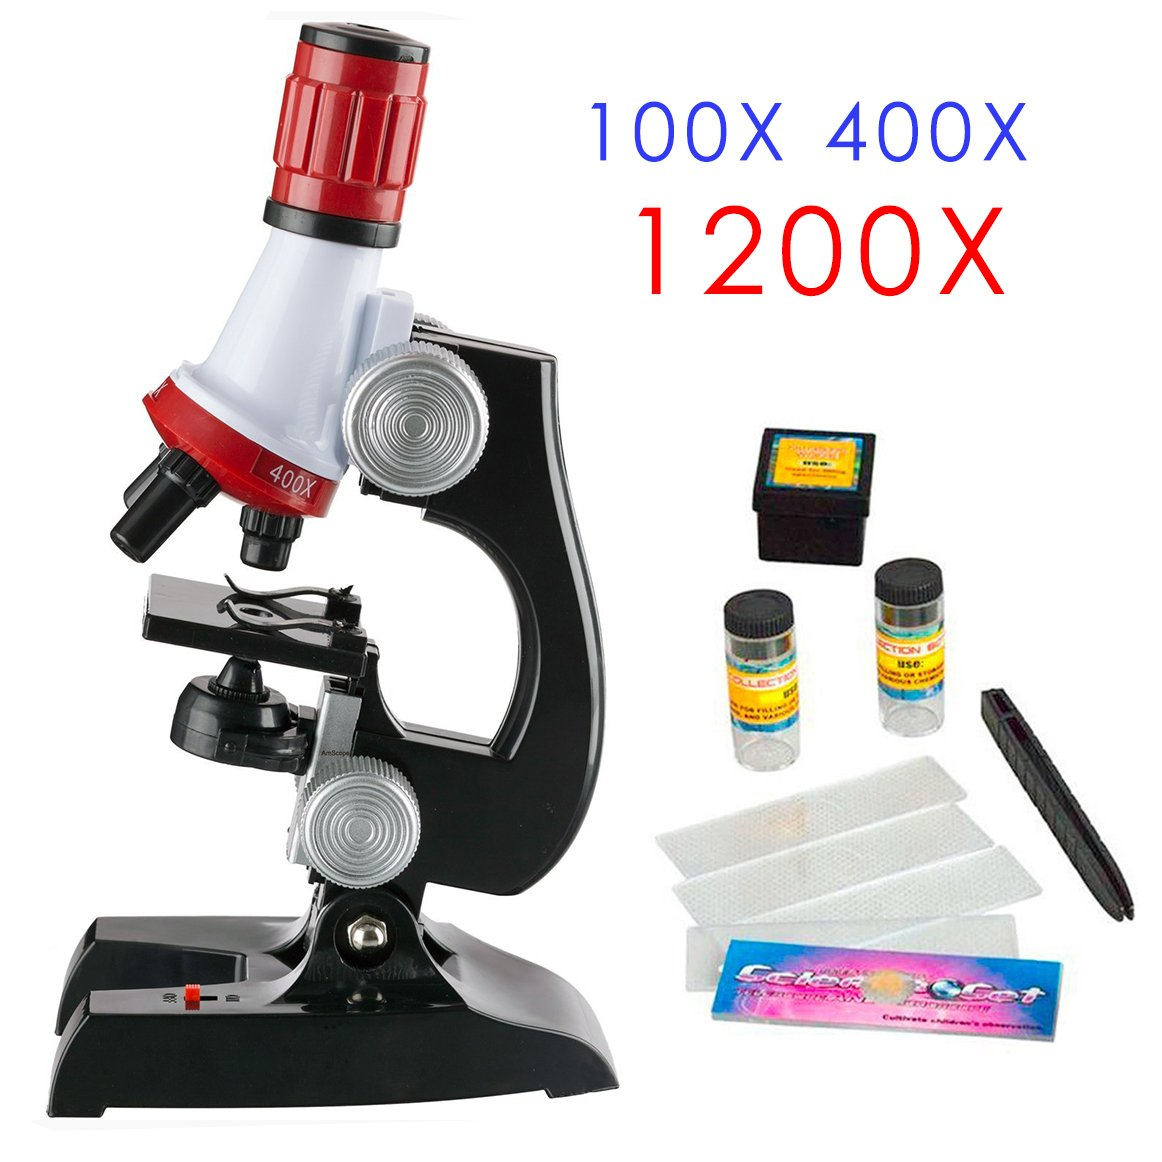 Kids Microscope Science kit with Slides Educational Beginner Microscopes Kit with LED 100X 400X and 1200X Magnification for kids Students (Microscope)